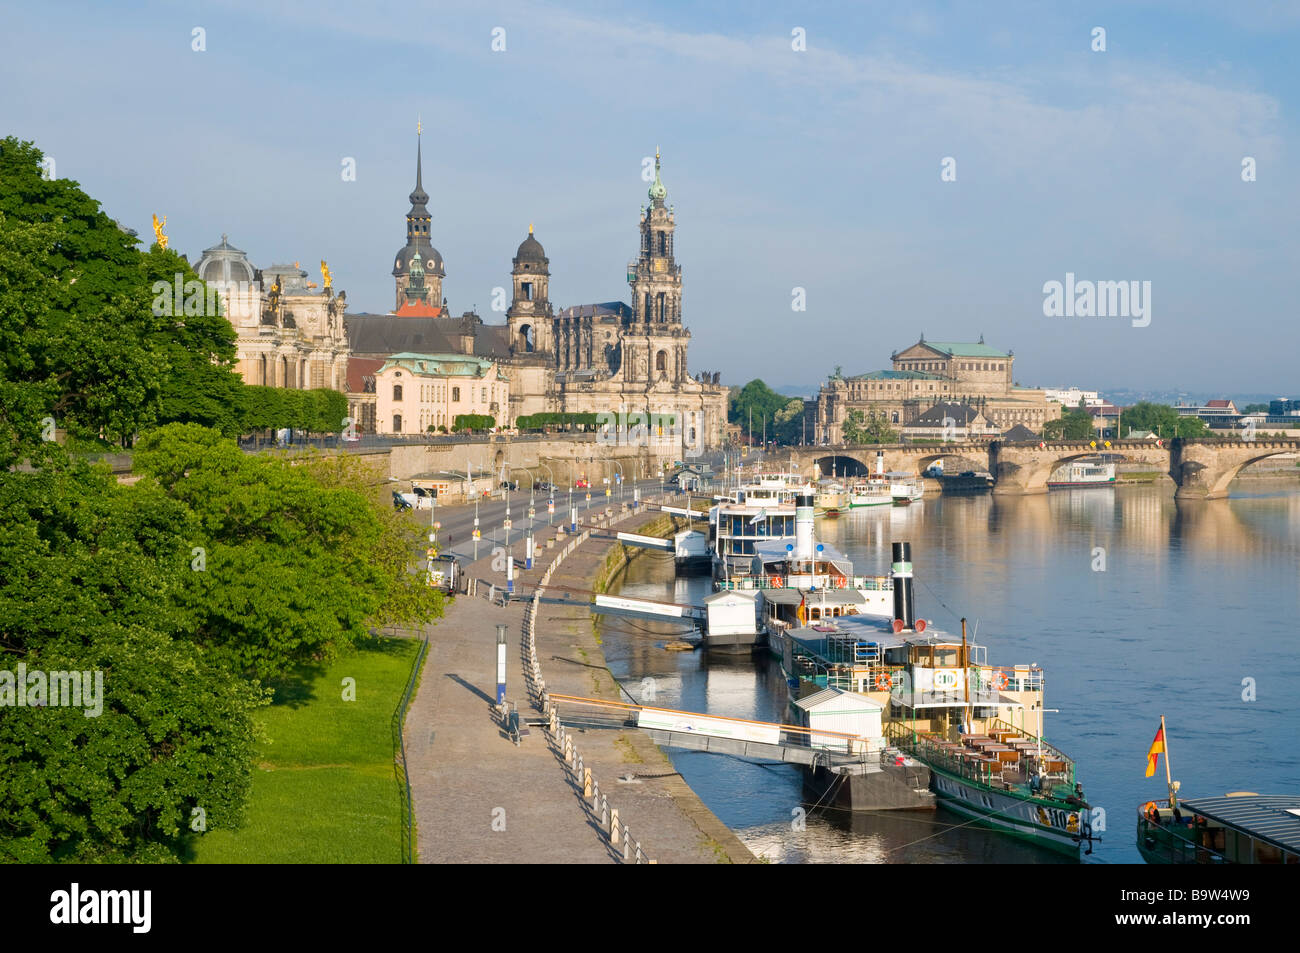 blick ber die elbe auf barocke altstadt historische kulisse stock photo 23294917 alamy. Black Bedroom Furniture Sets. Home Design Ideas